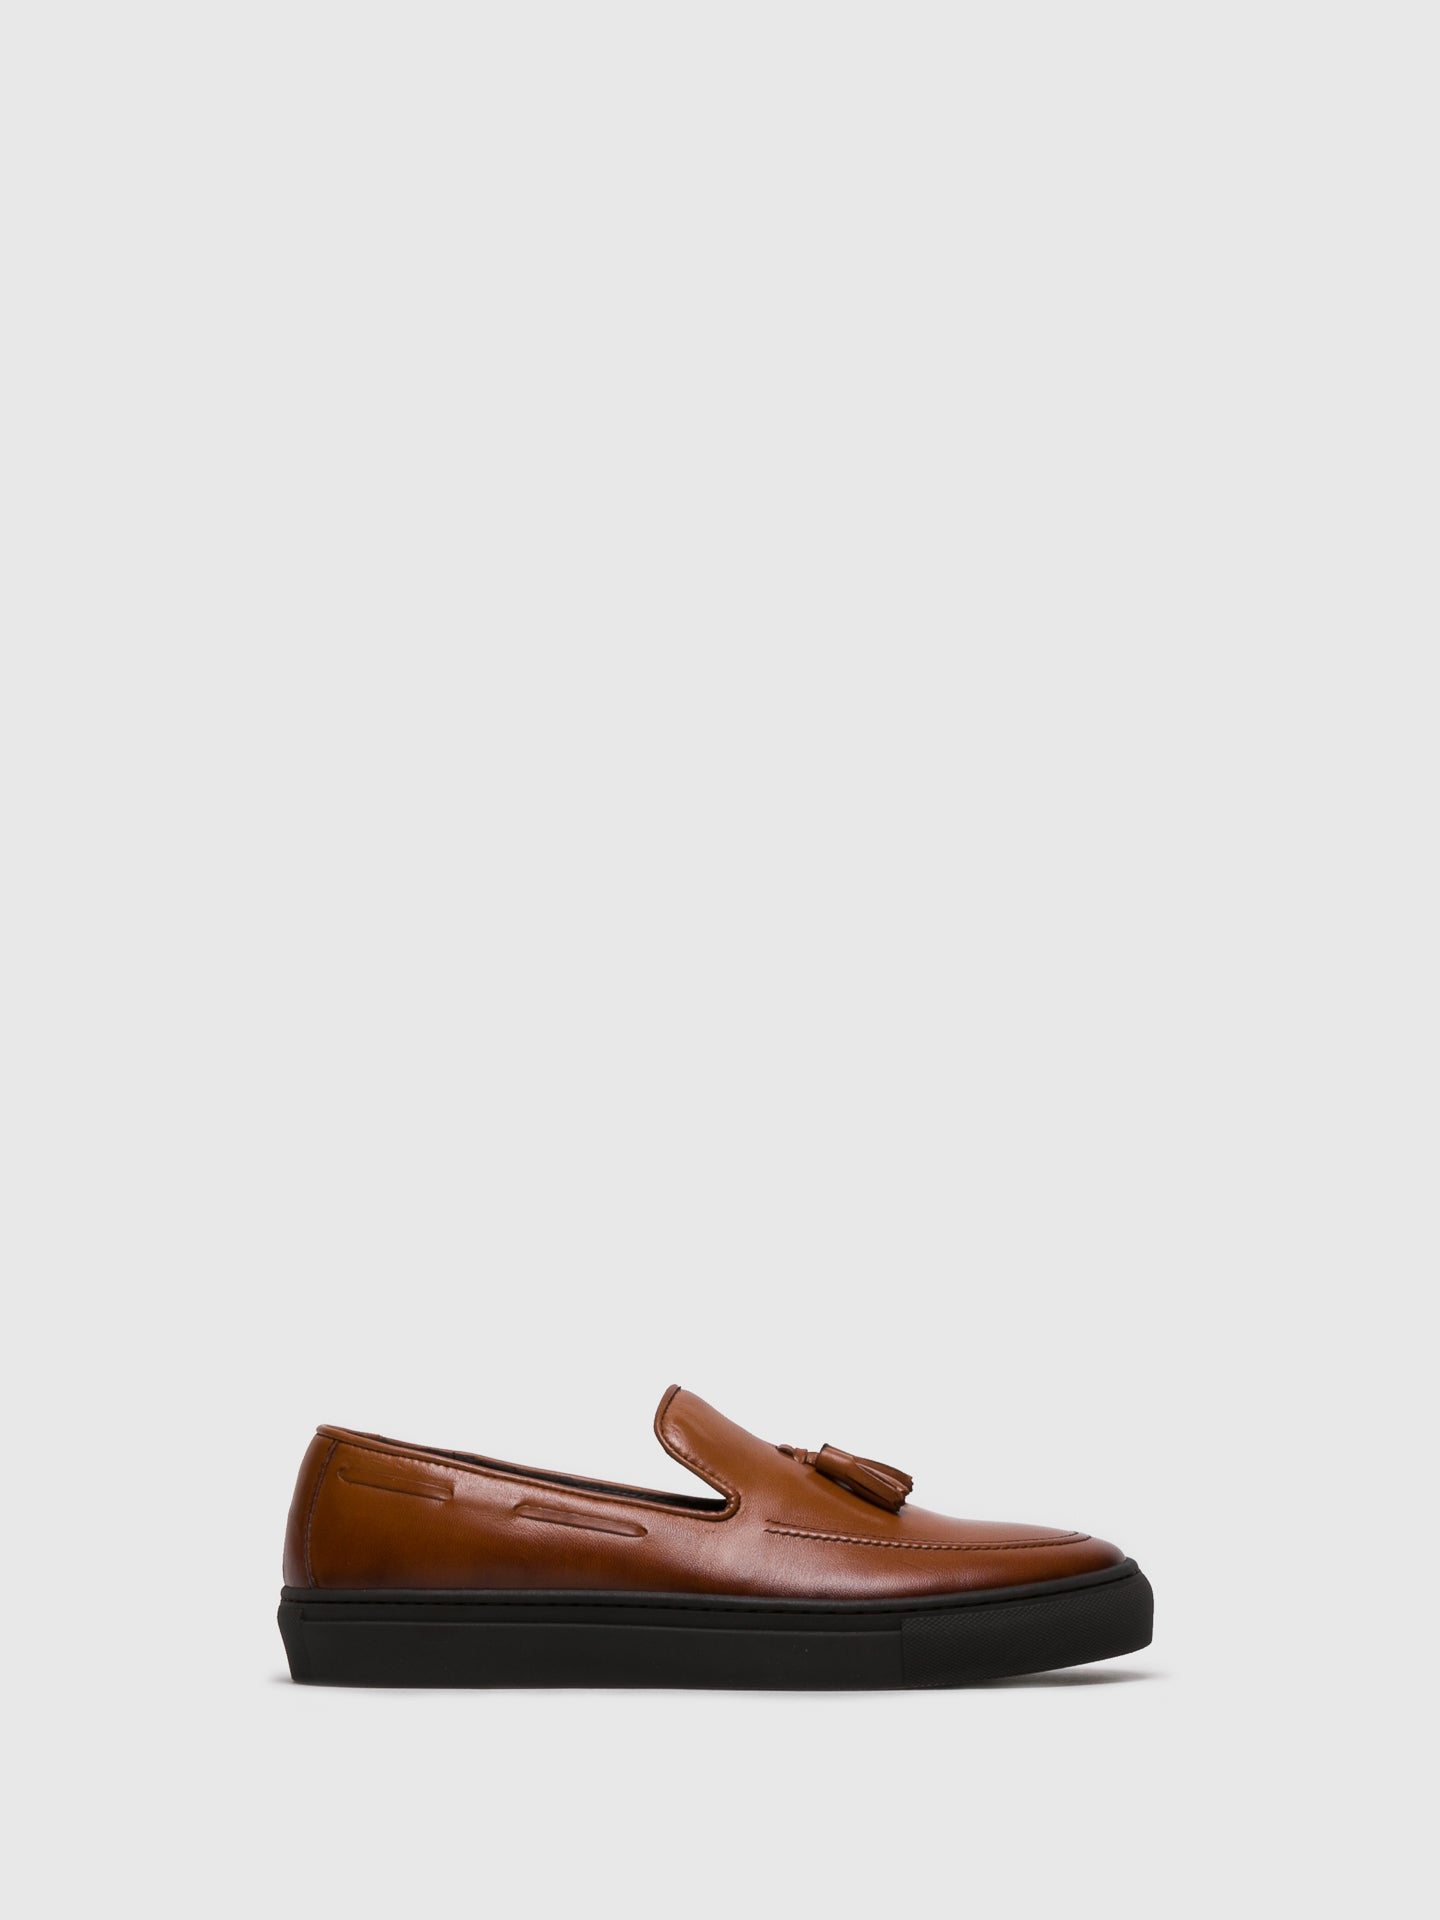 Foreva Brown Loafers Shoes